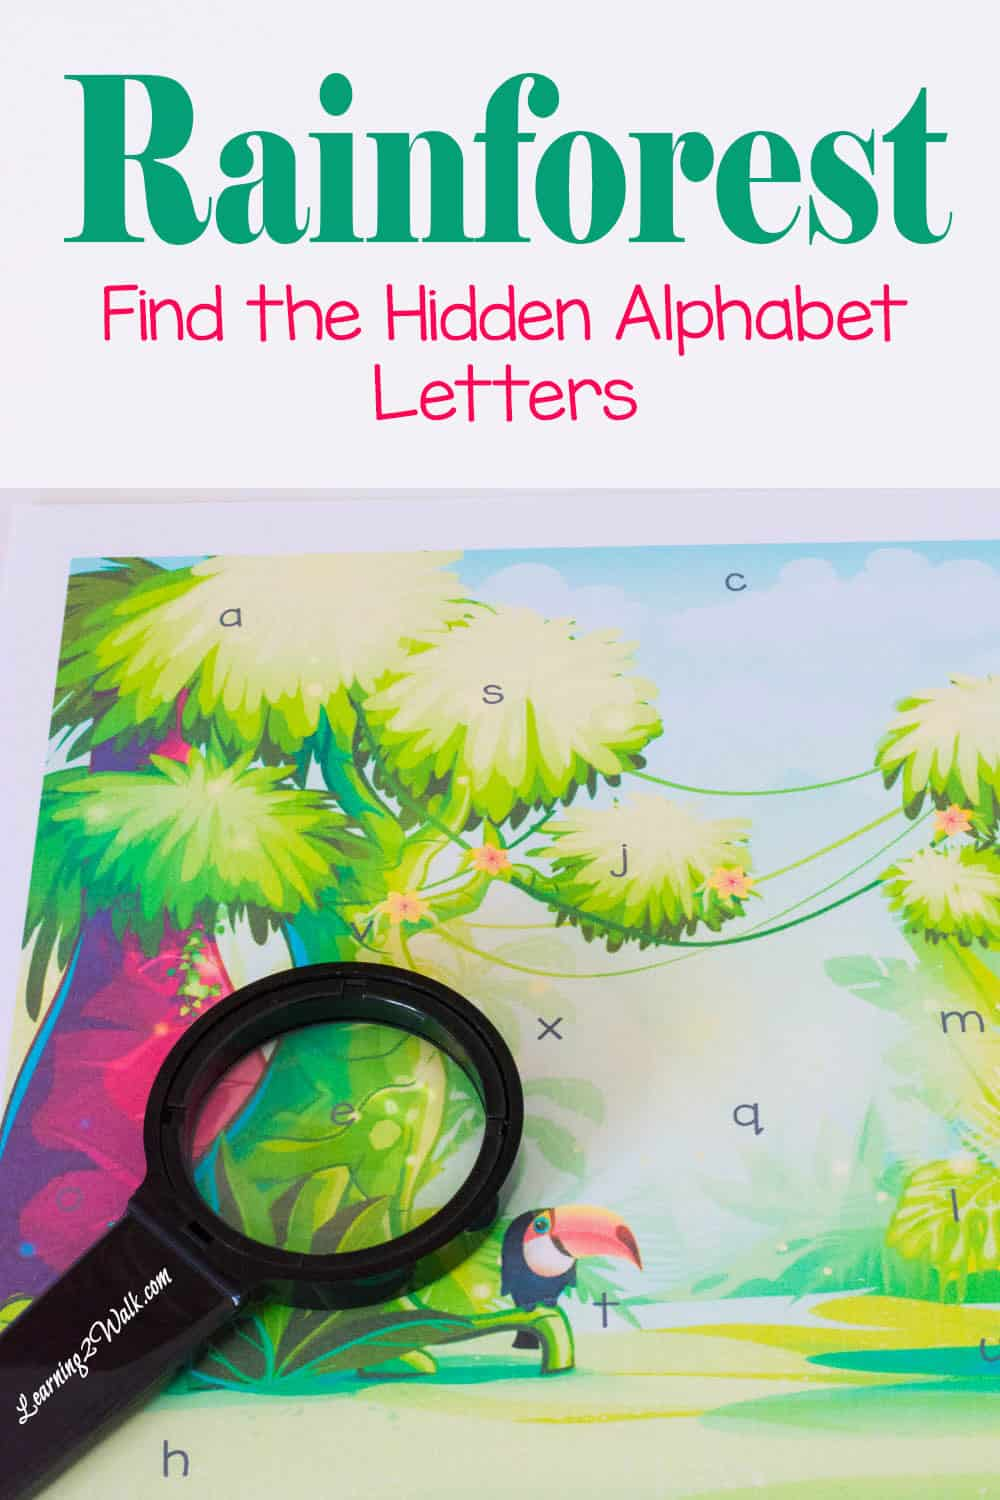 Use this fun rainforest alphabet game to help your kids work on preschool letter recognition as well as alphabetical order.